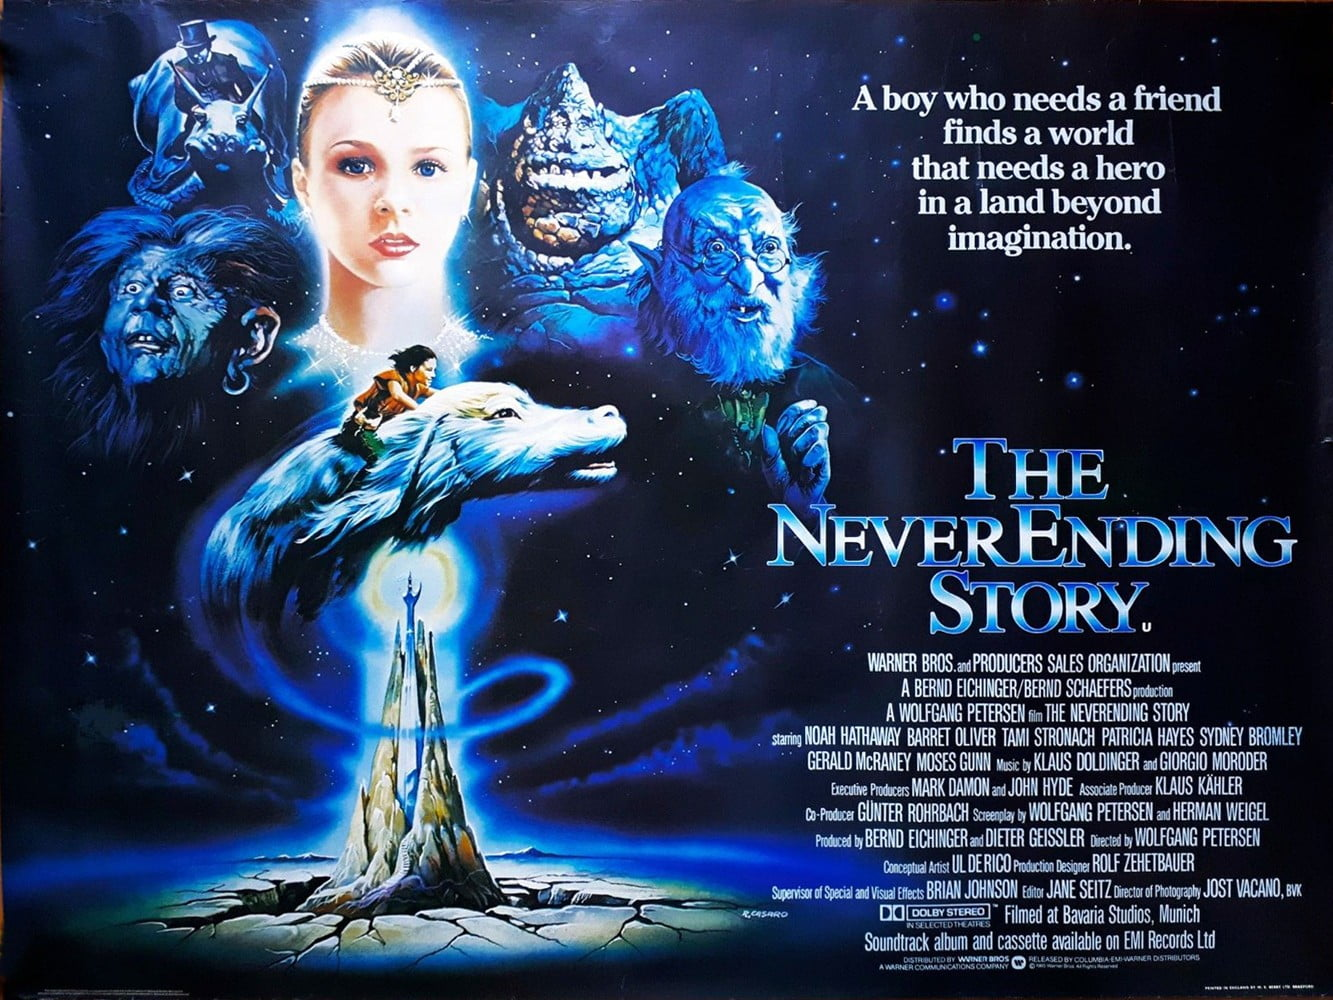 The Neverending Story – Movie Posters Gallery